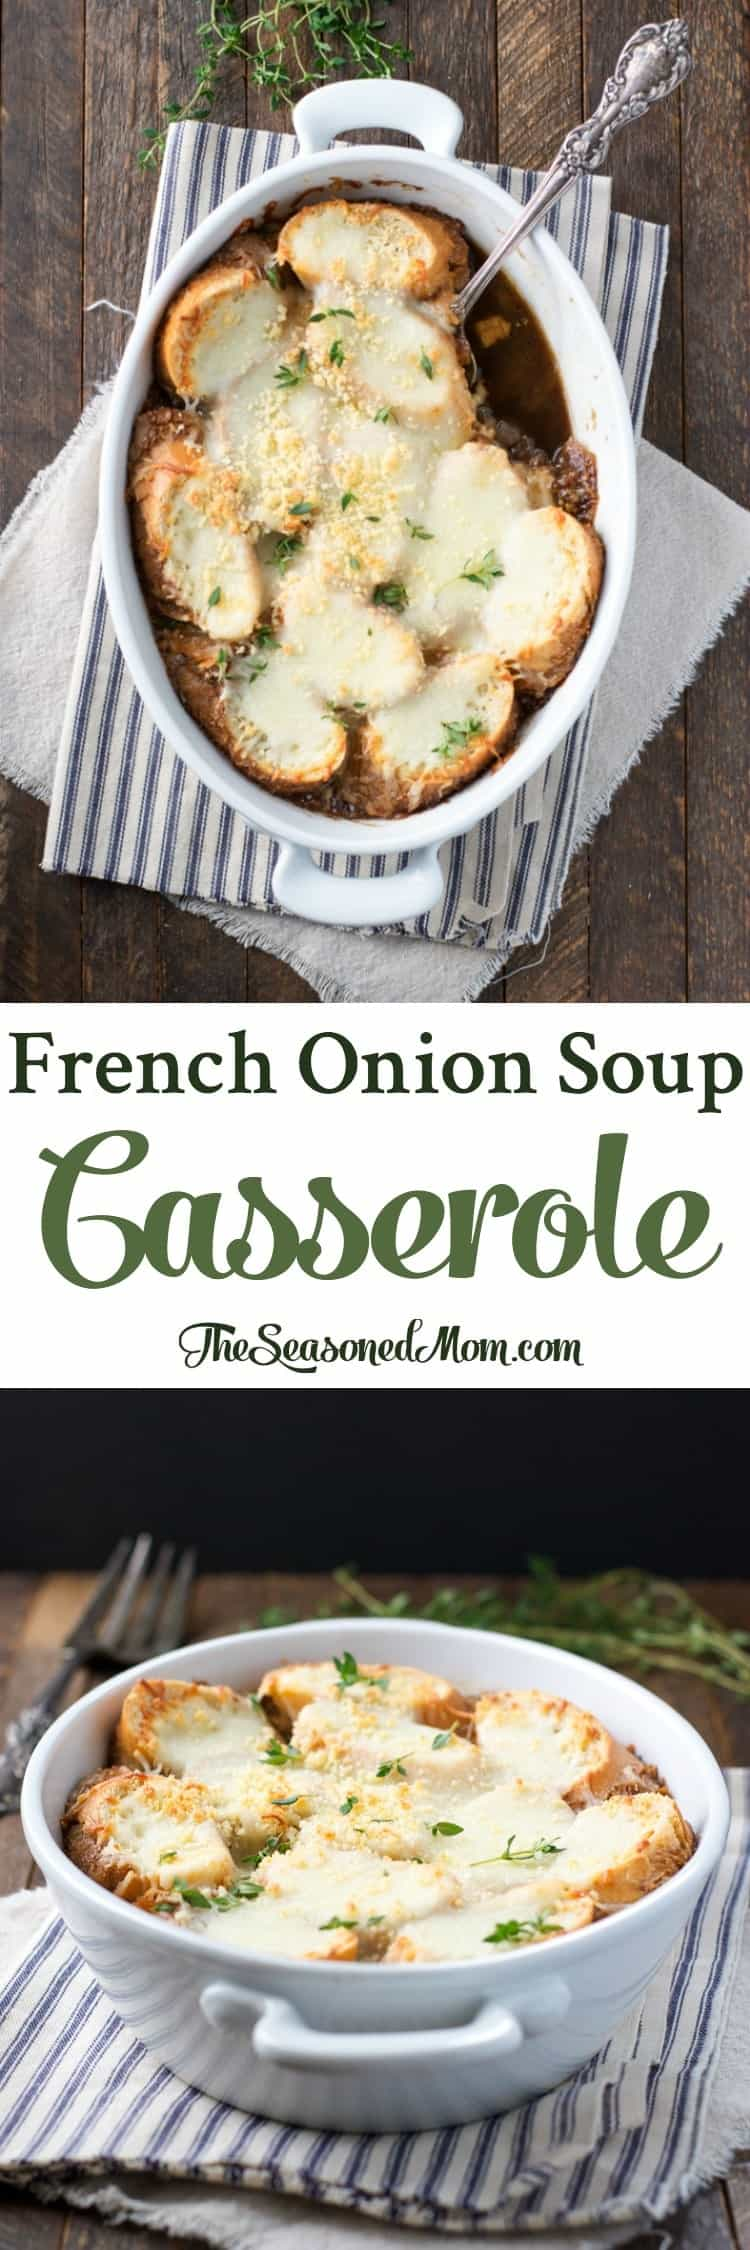 In just 10 minutes you can prep this easy French Onion Soup Casserole for an easy side dish or a hearty vegetarian dinner!